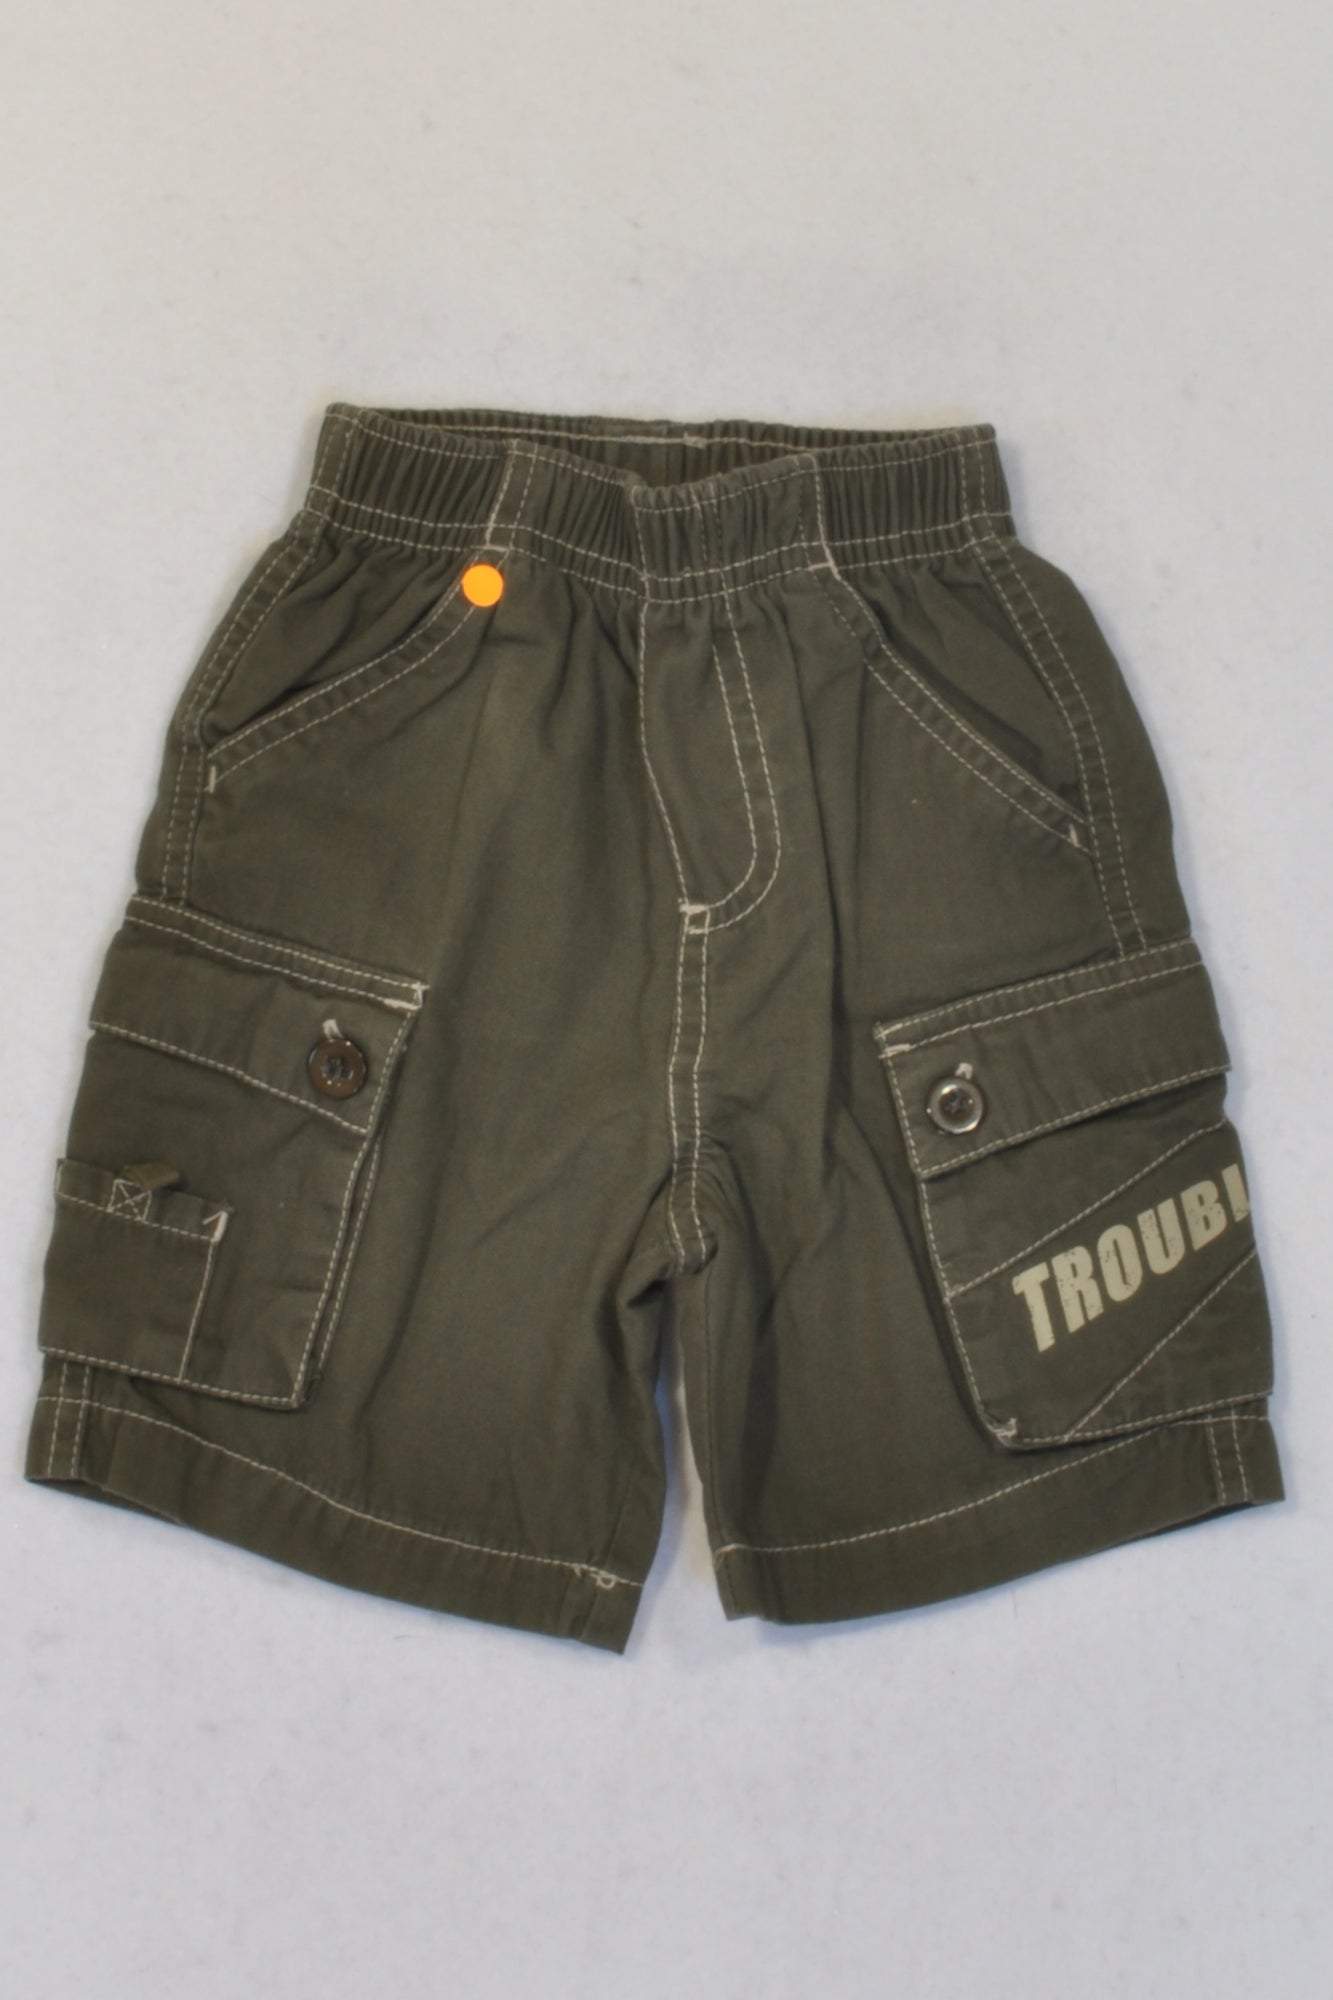 Production St Olive Trouble Cargo Shorts Boys 3-6 months